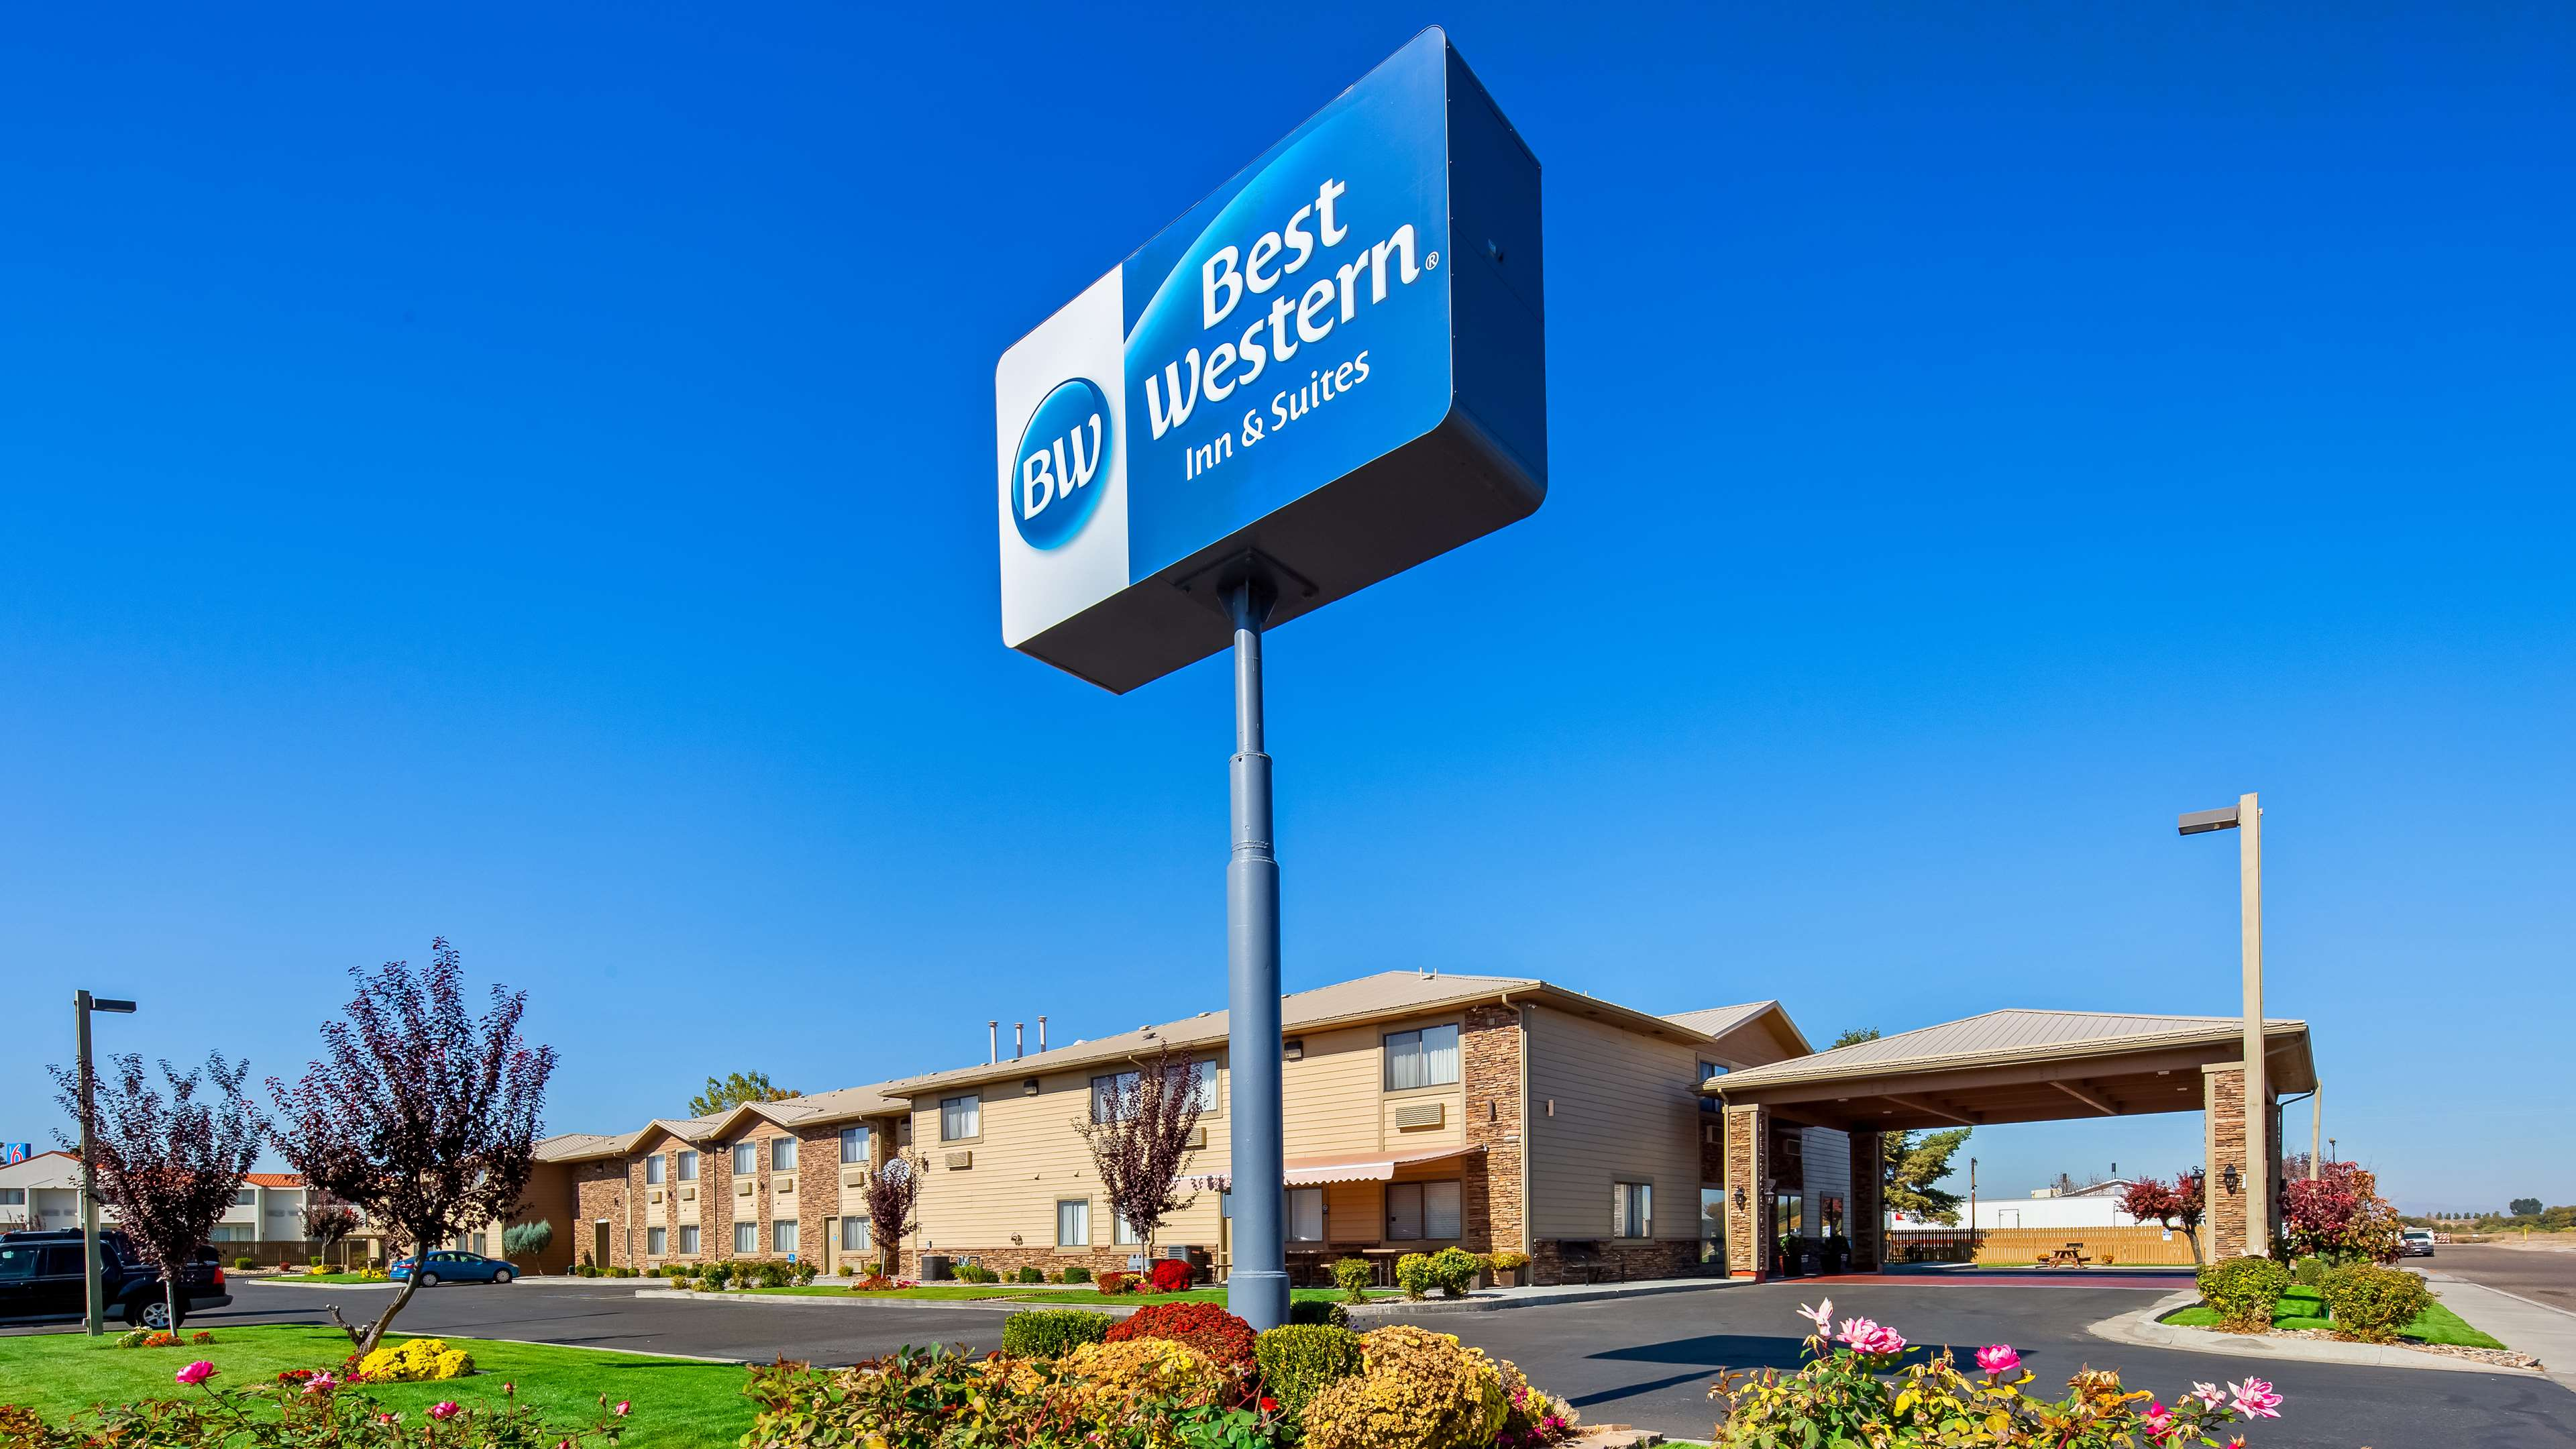 Best Western Inn & Suites image 1